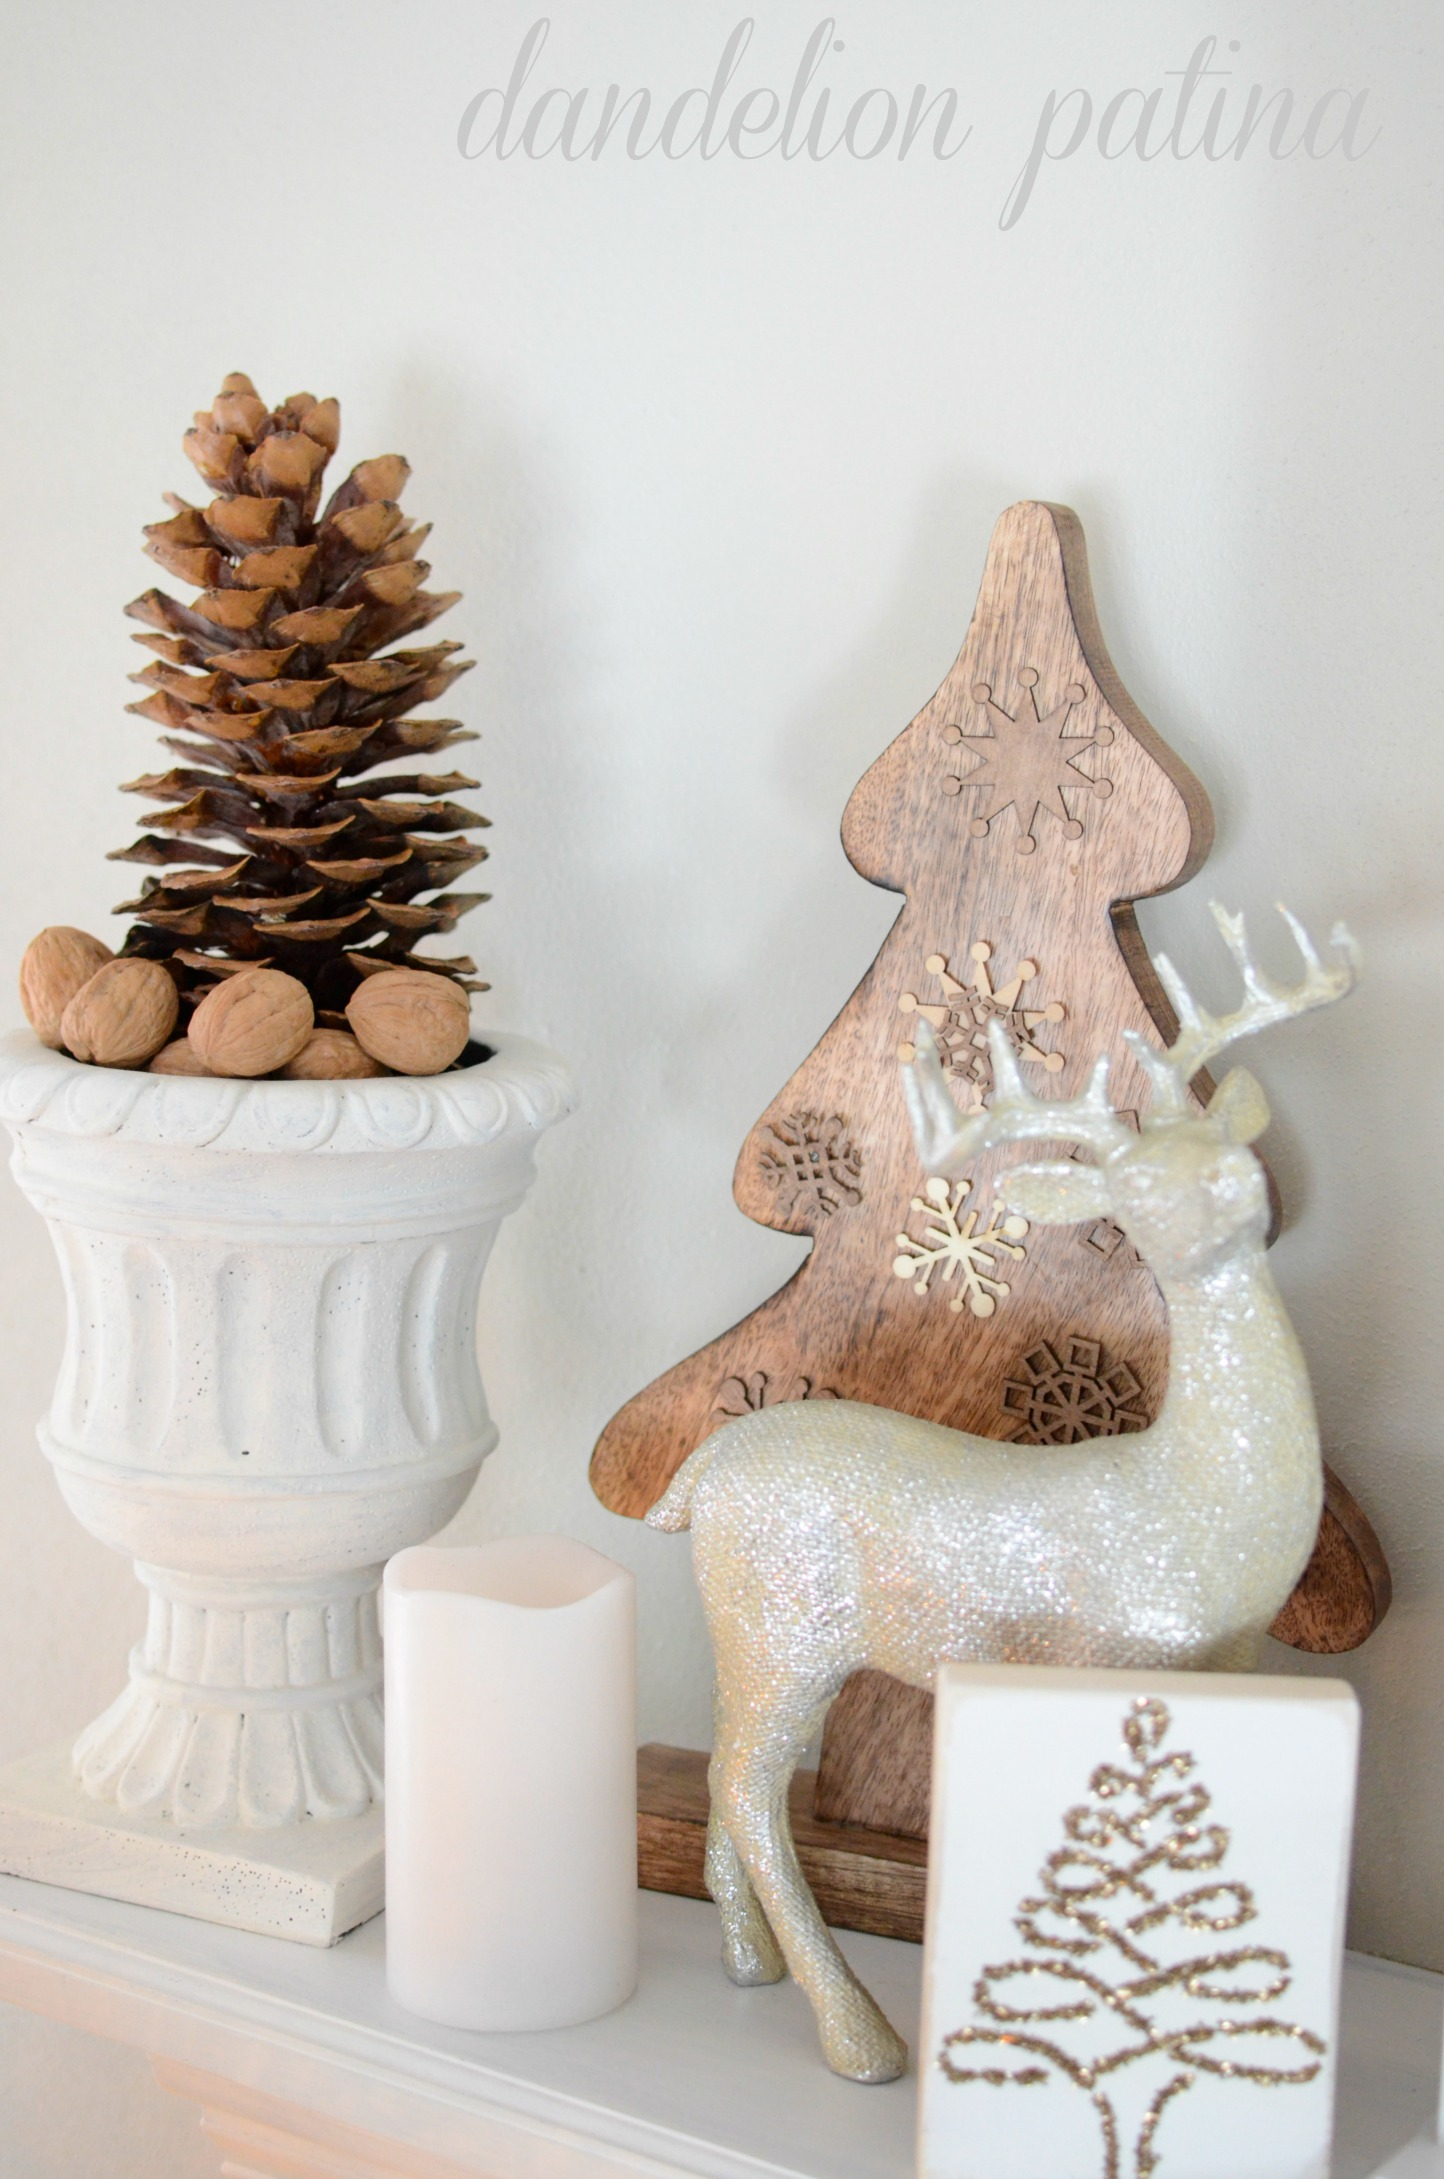 deer statue on mantel